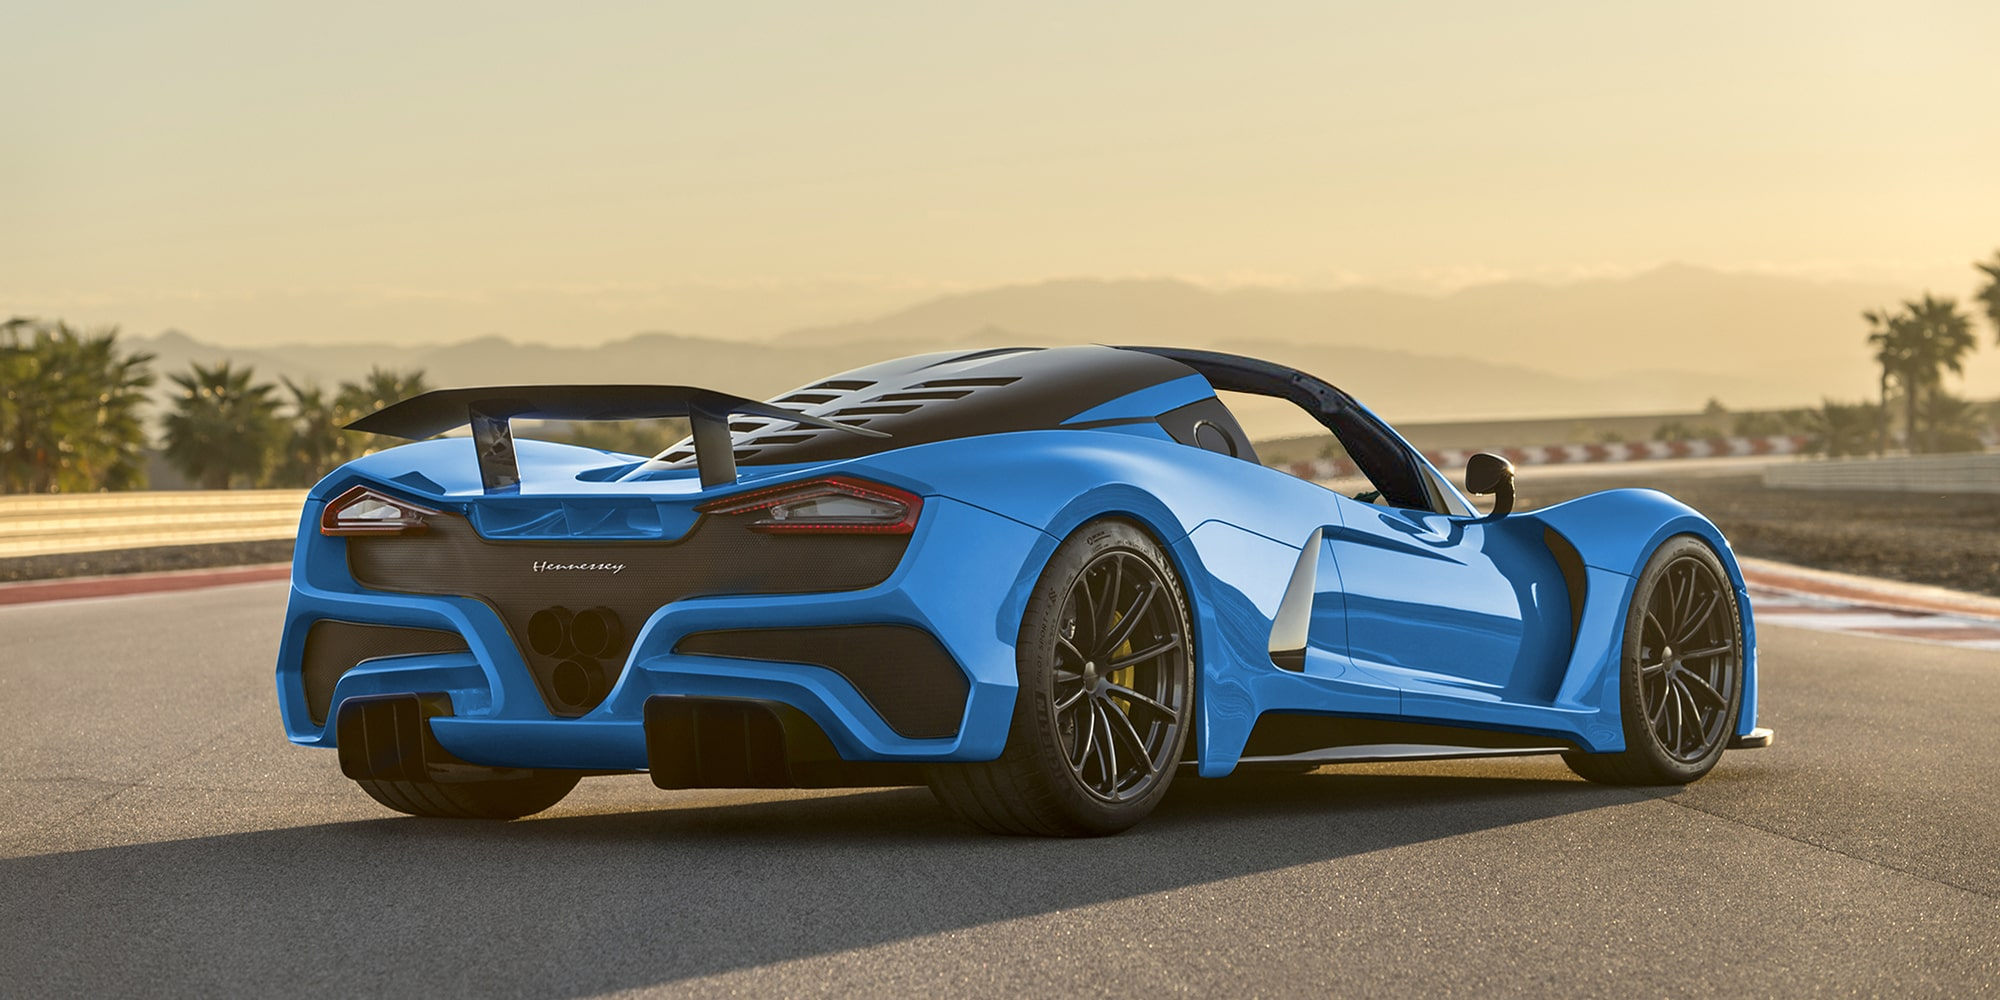 Hennessey Venom F5 Roadster Rear View